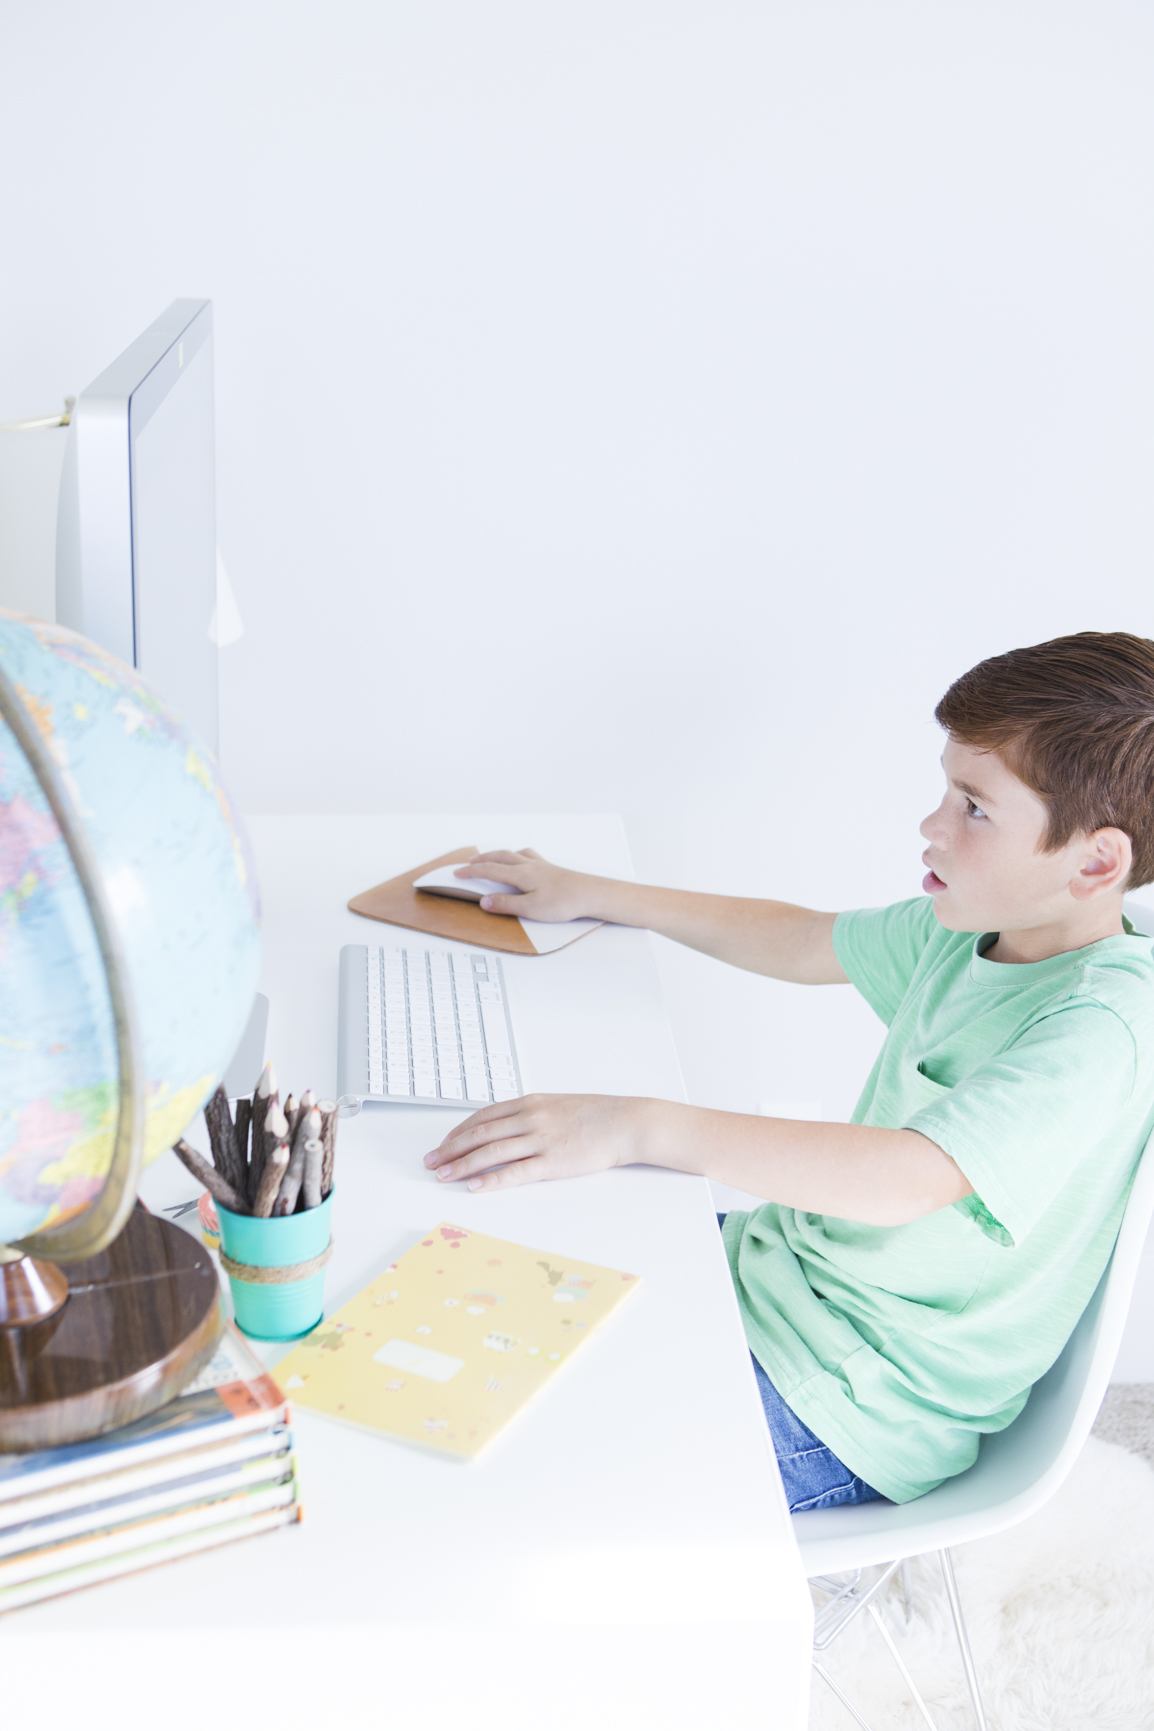 Kids using the Computer Internet